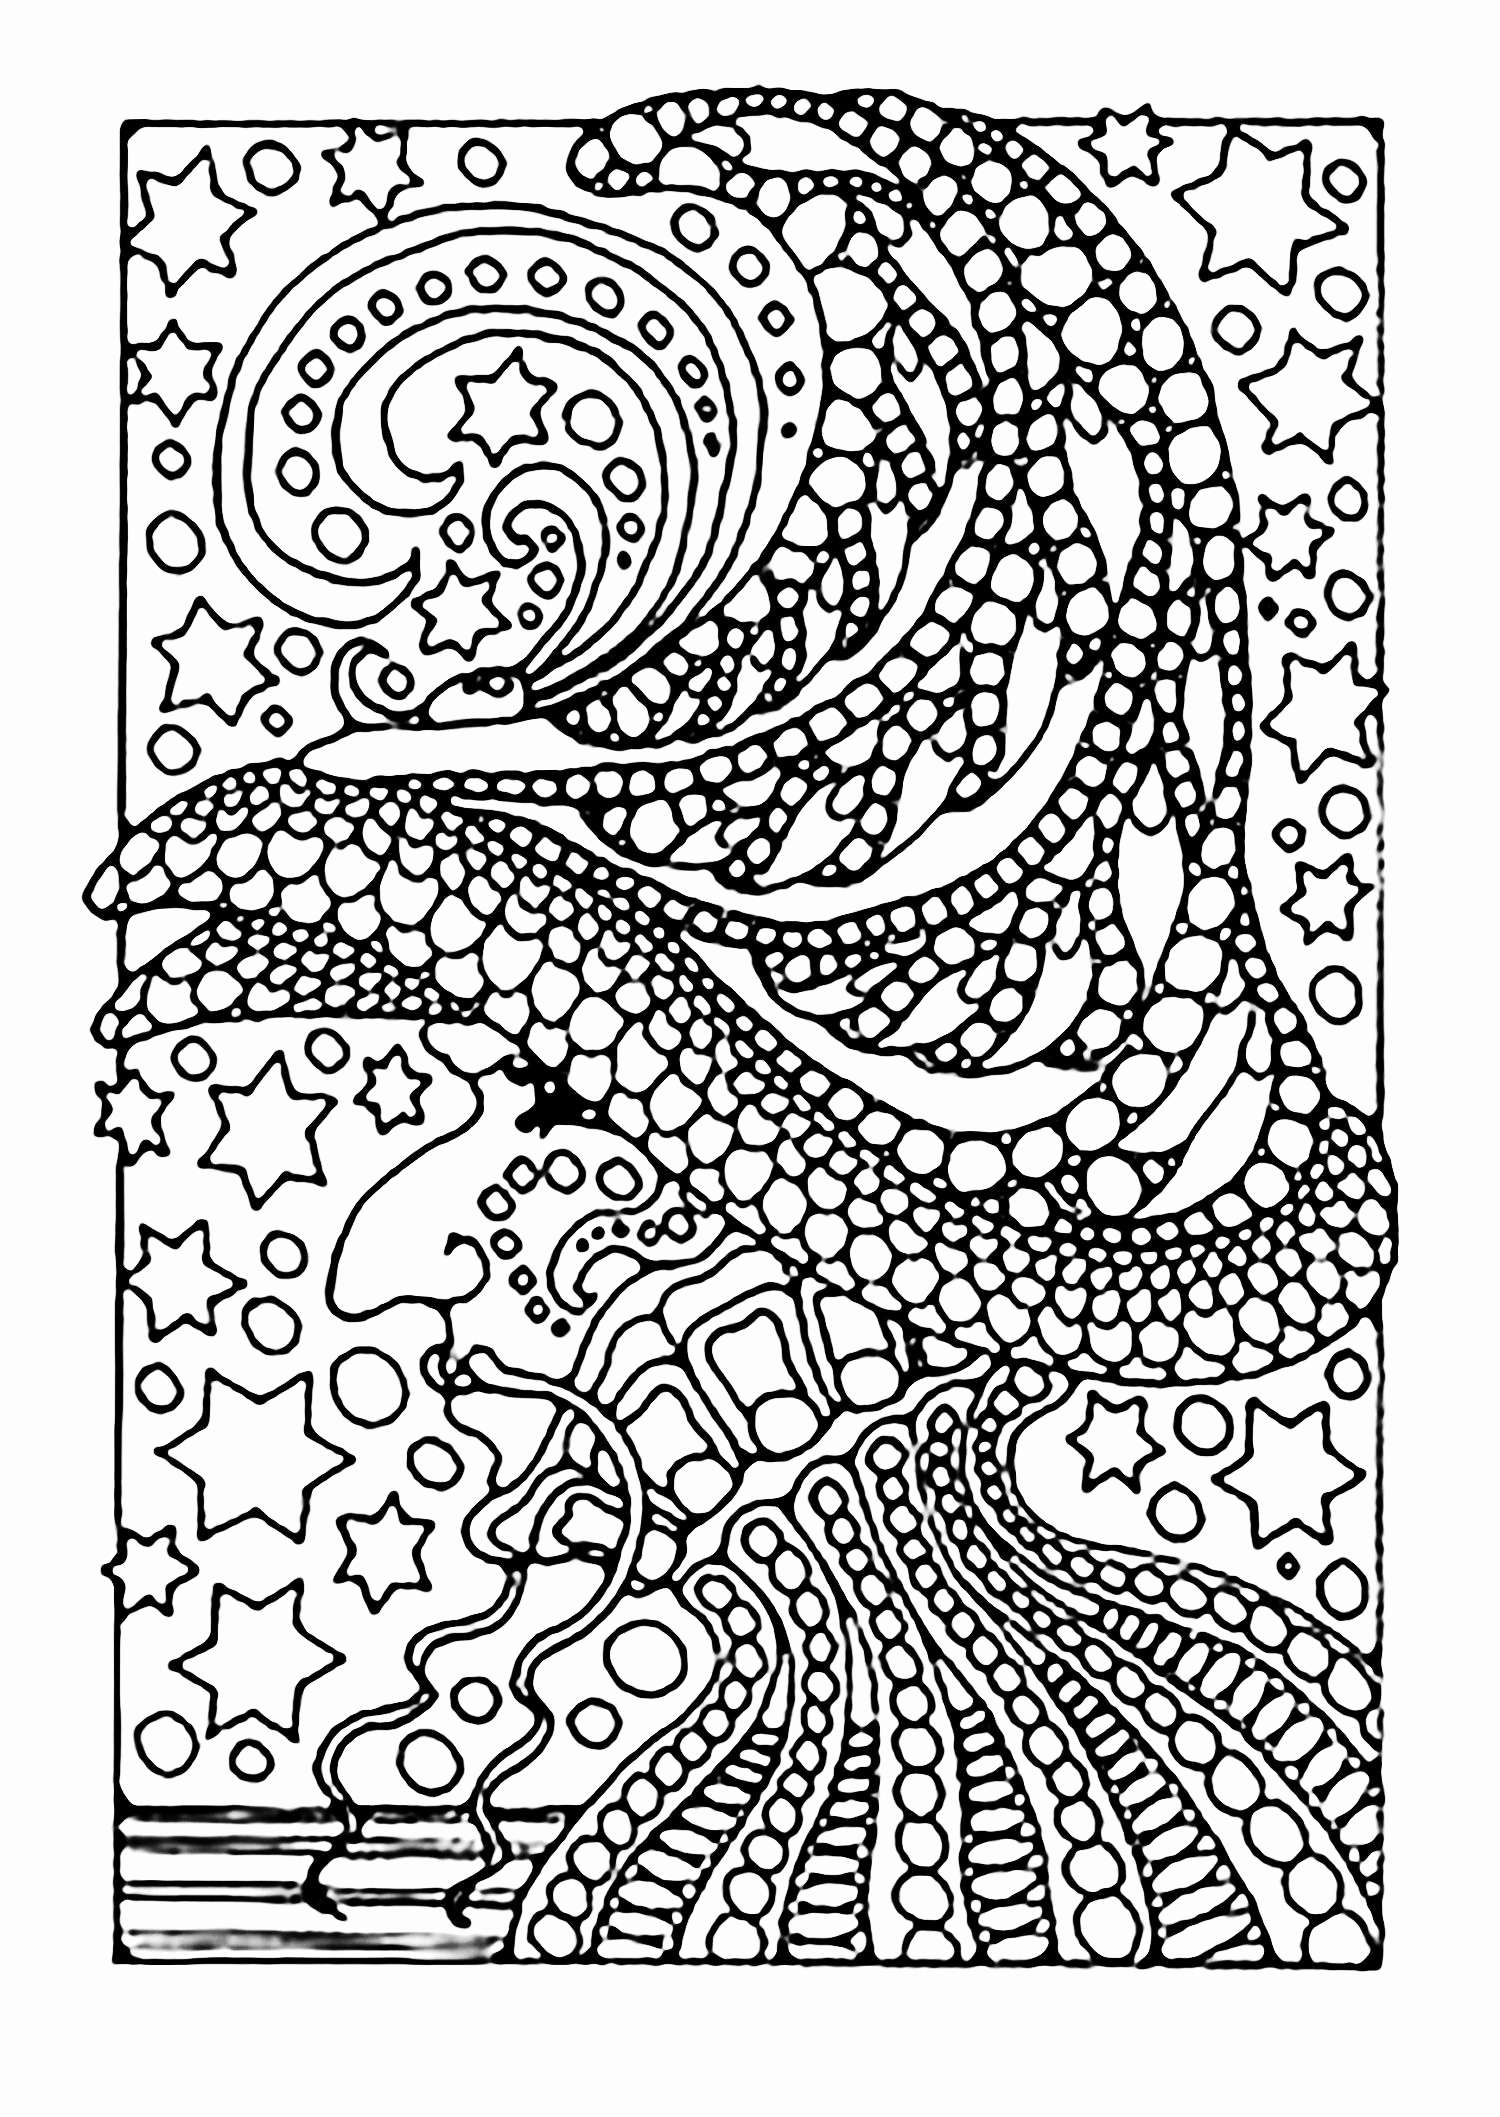 The Beatitudes Coloring Pages  Download 16k - To print for your project